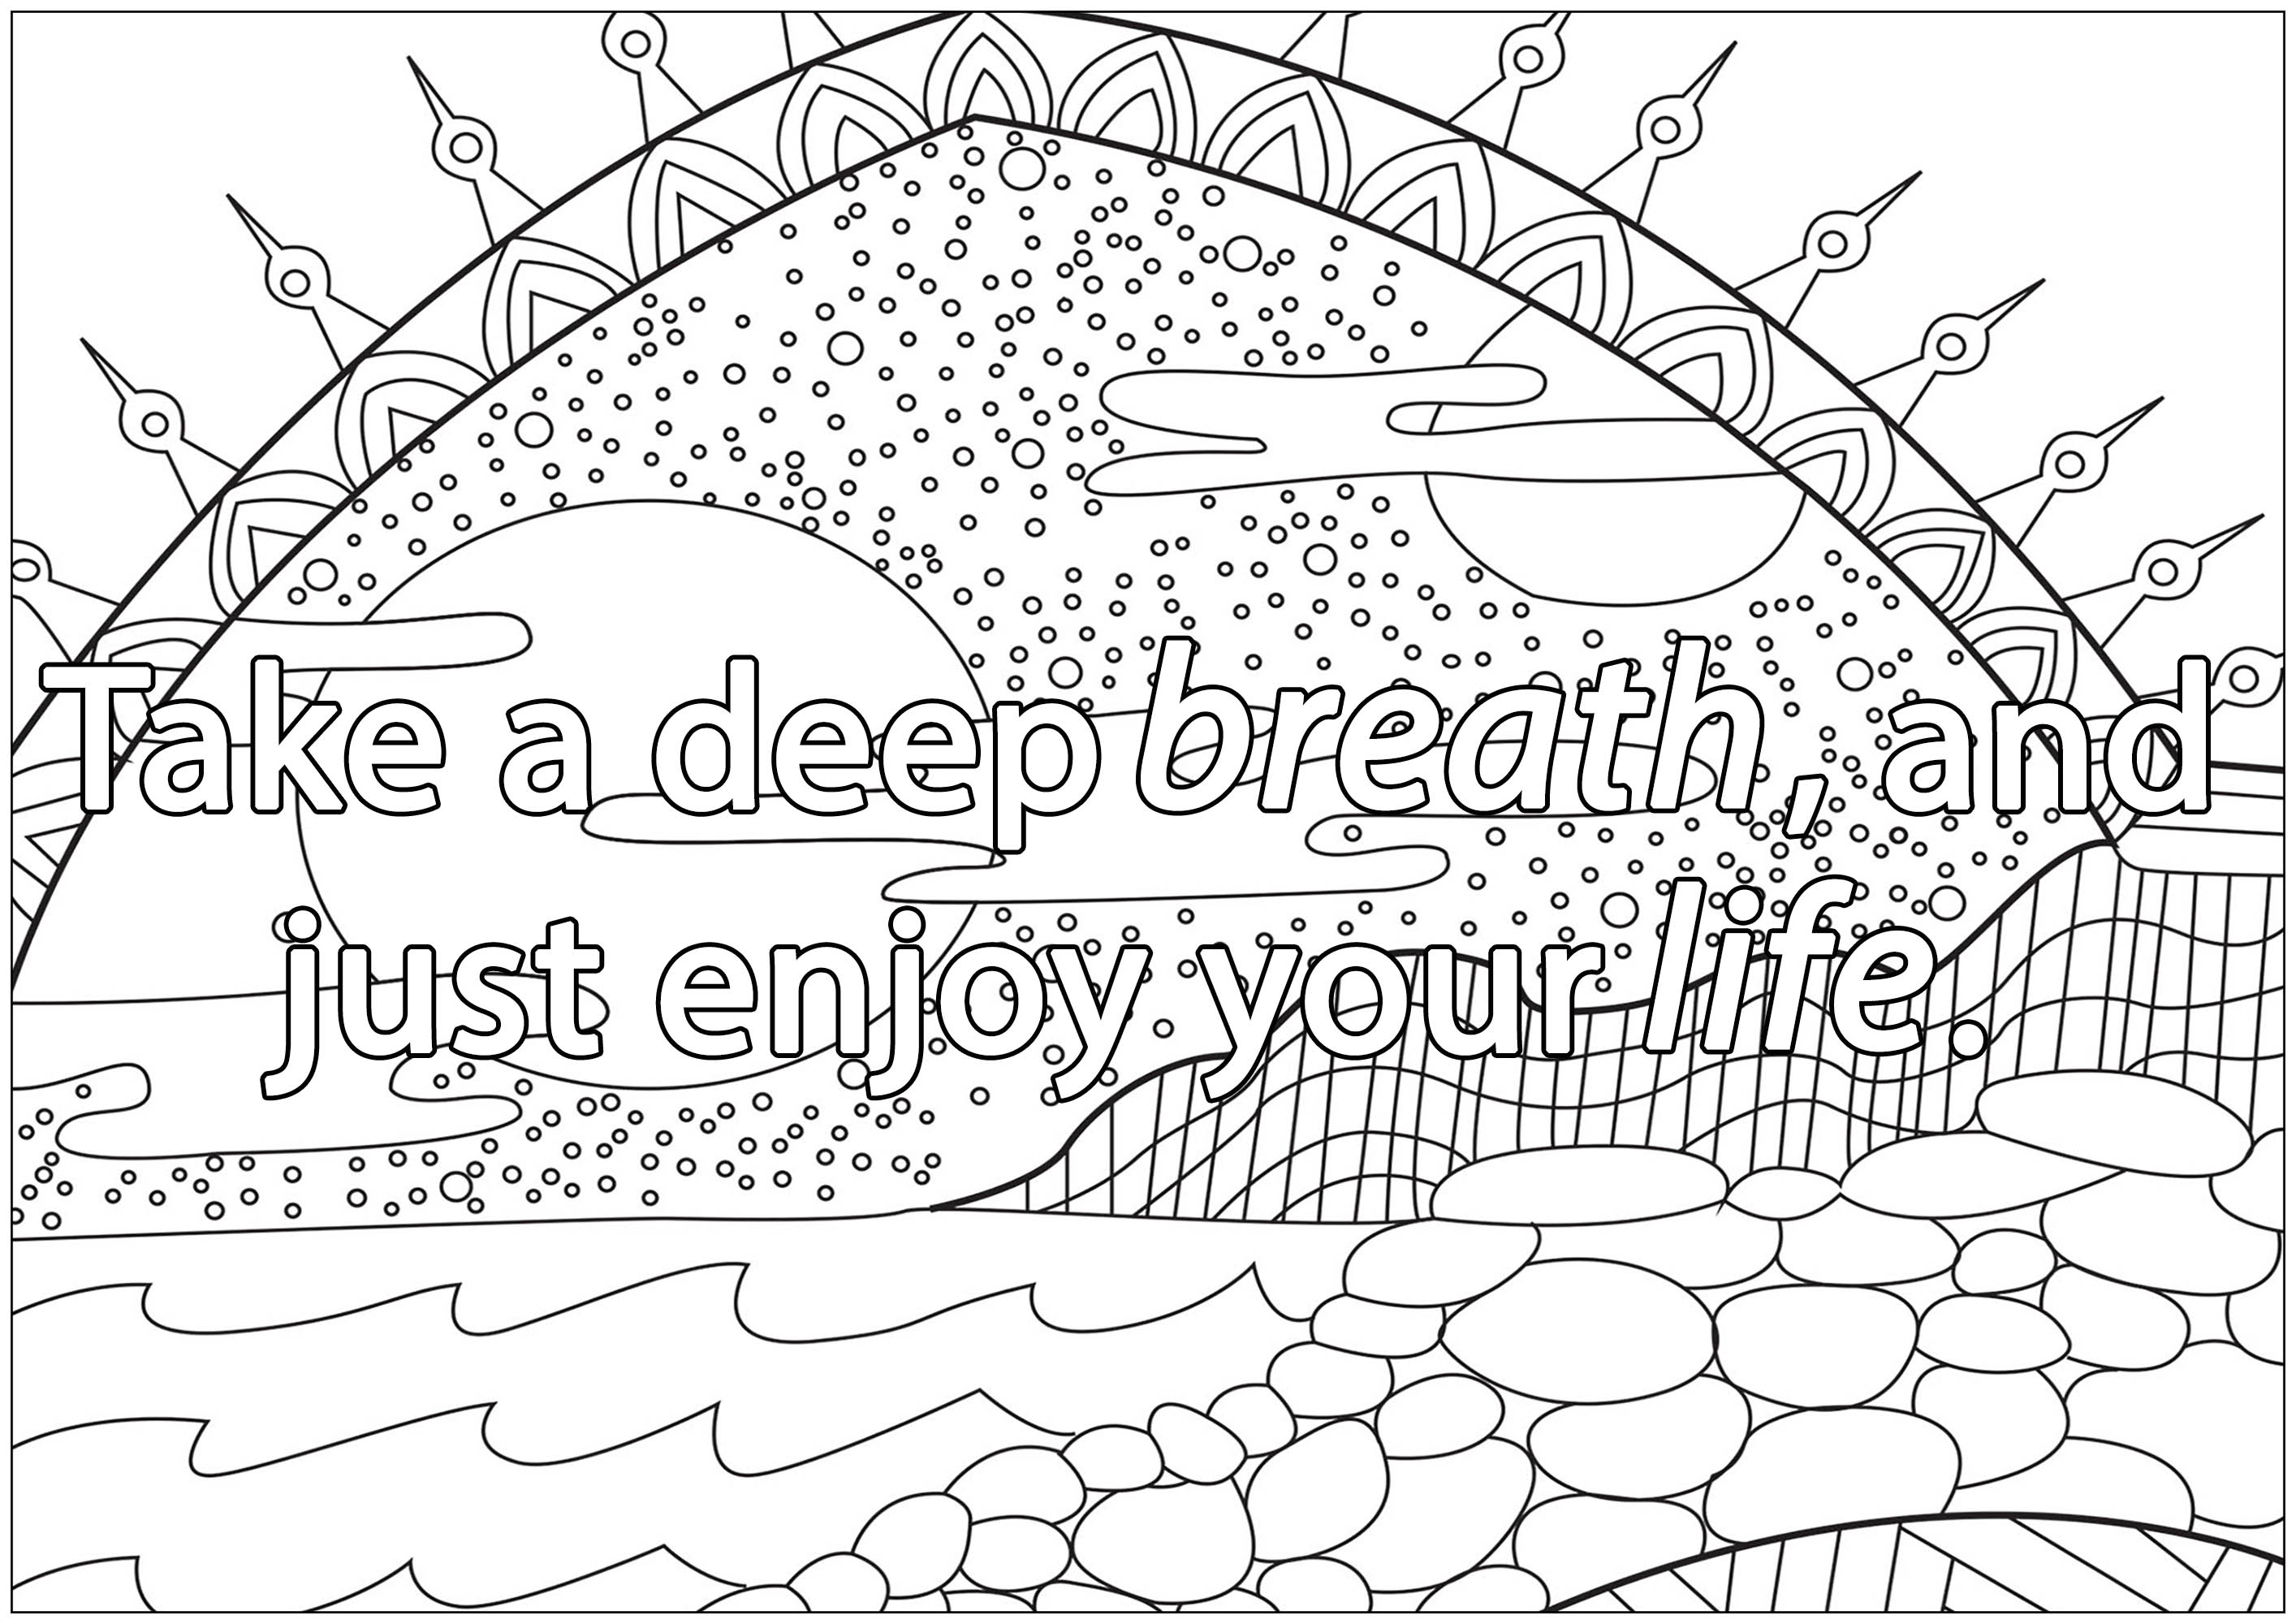 Take a deep breath and enjoy your live